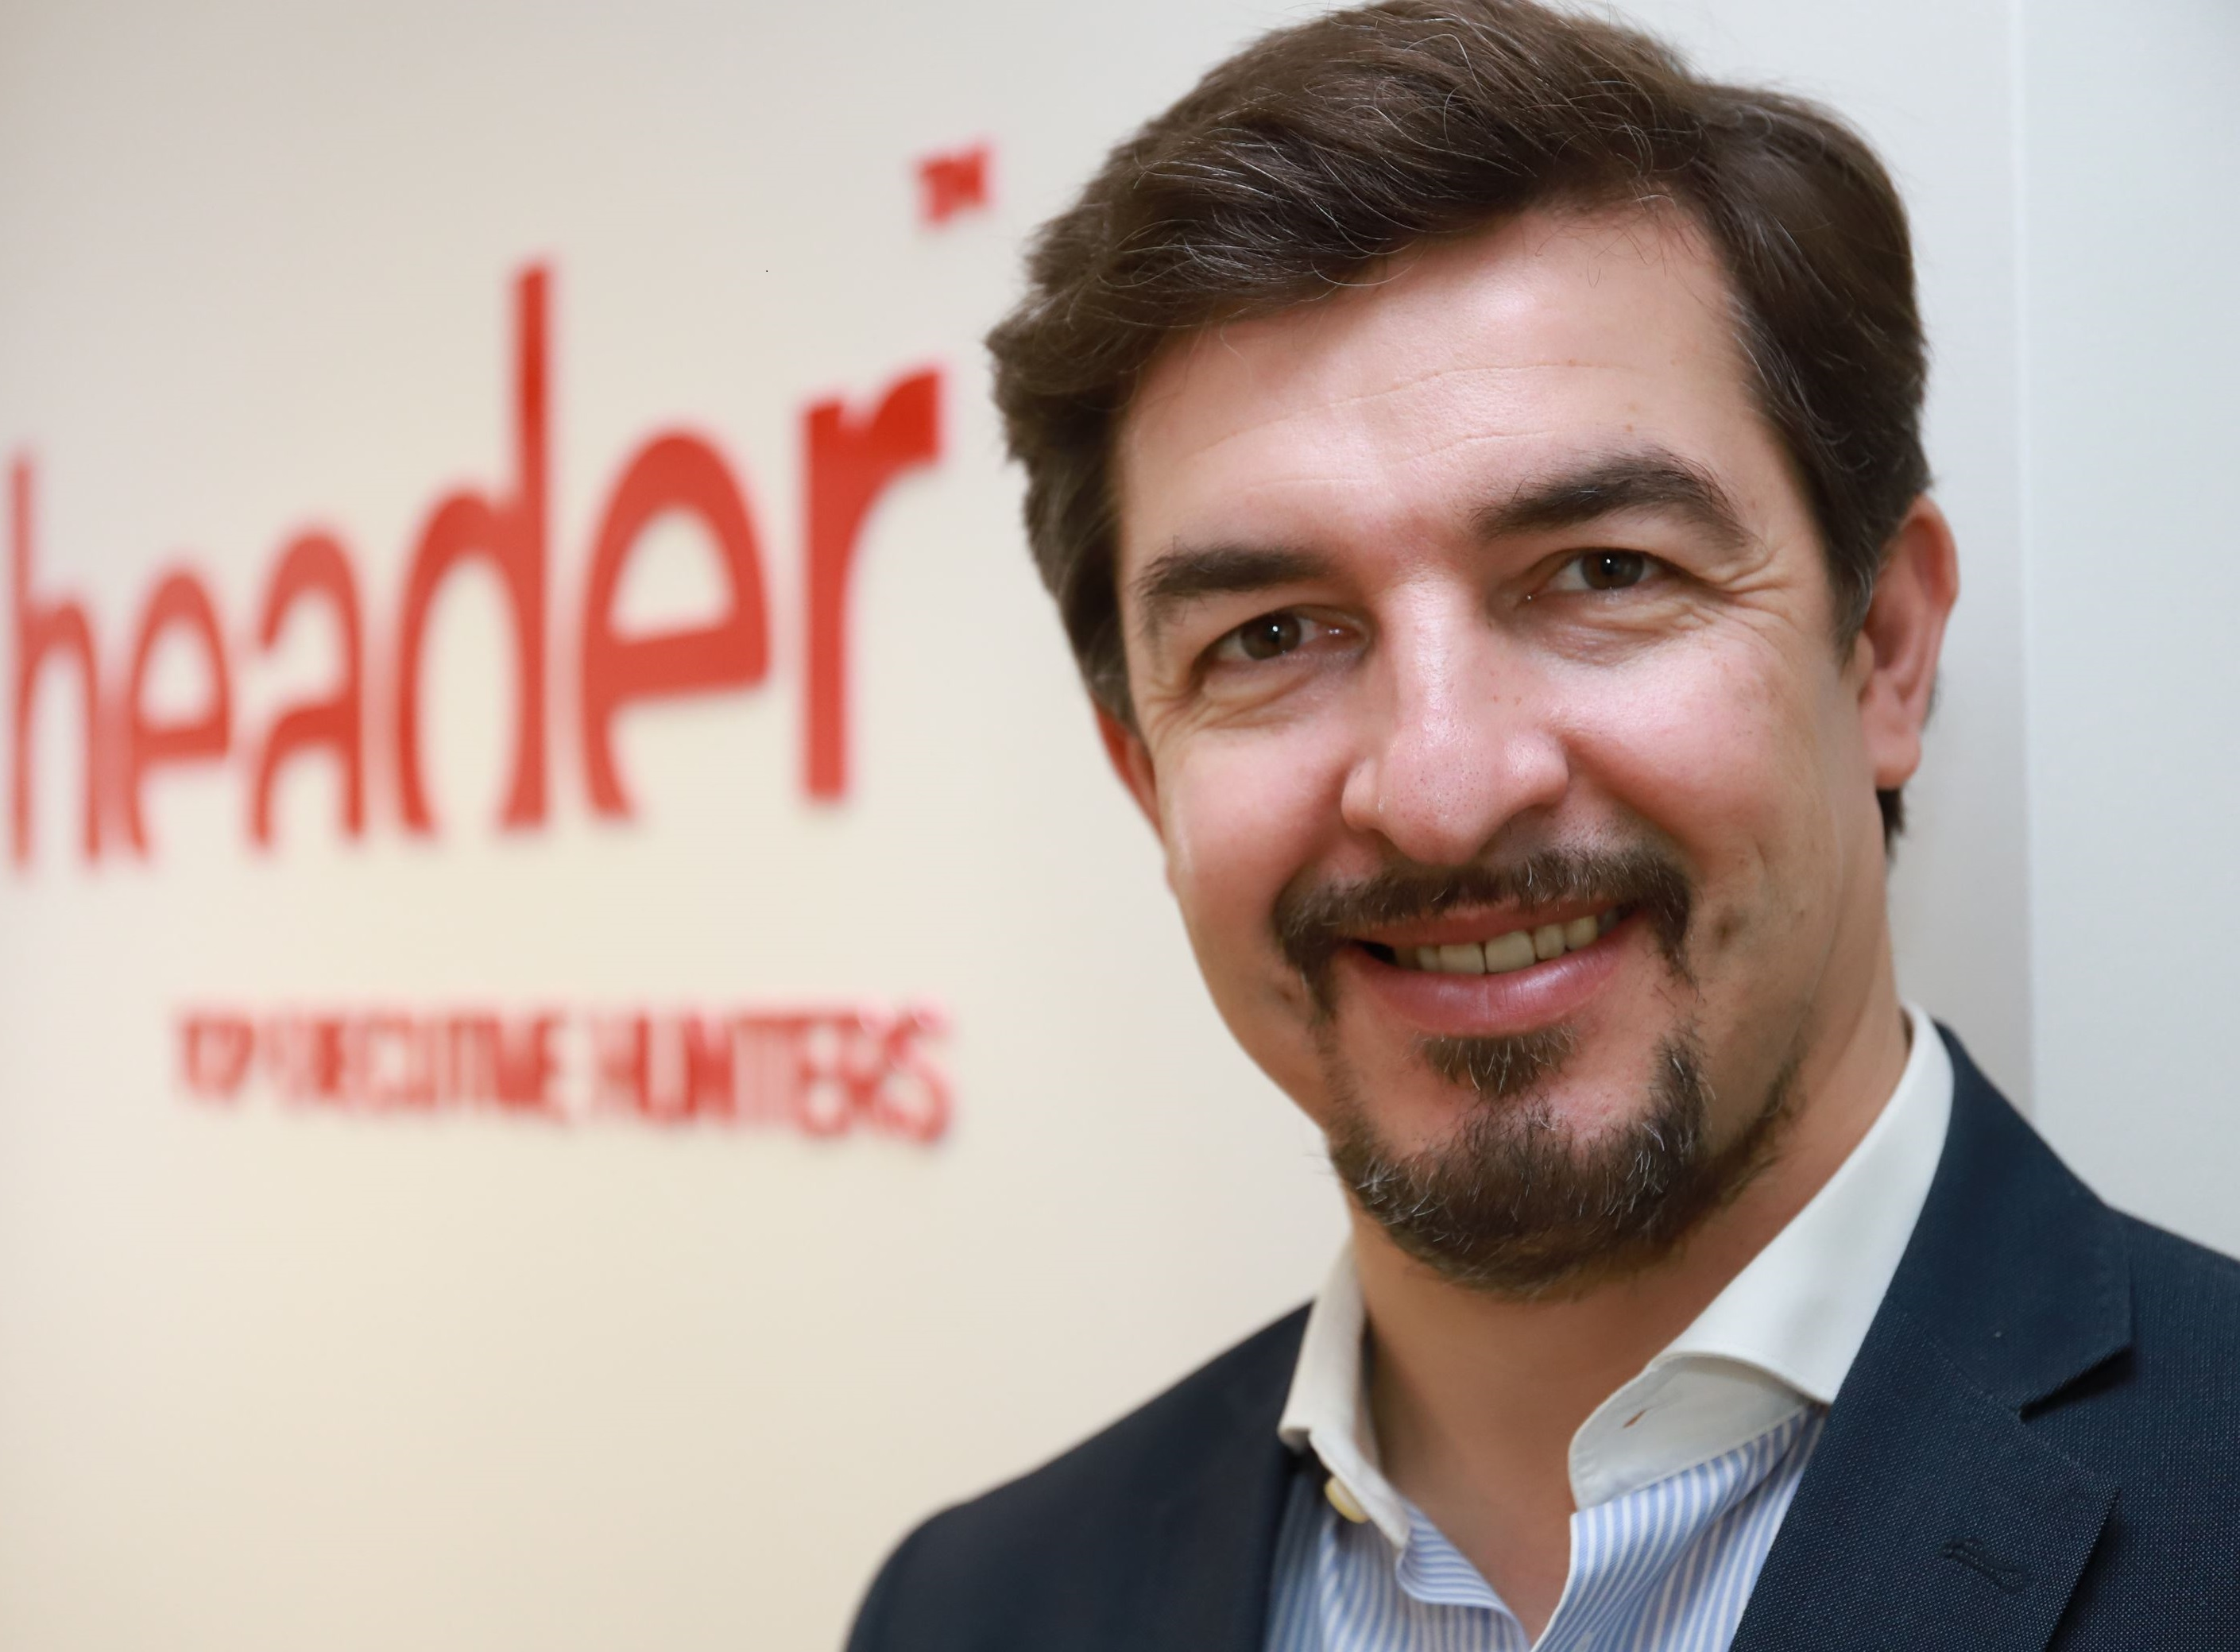 Pedro Branco - Business director at Header™ - Connecting Stories PARTTEAM & OEMKIOSKS